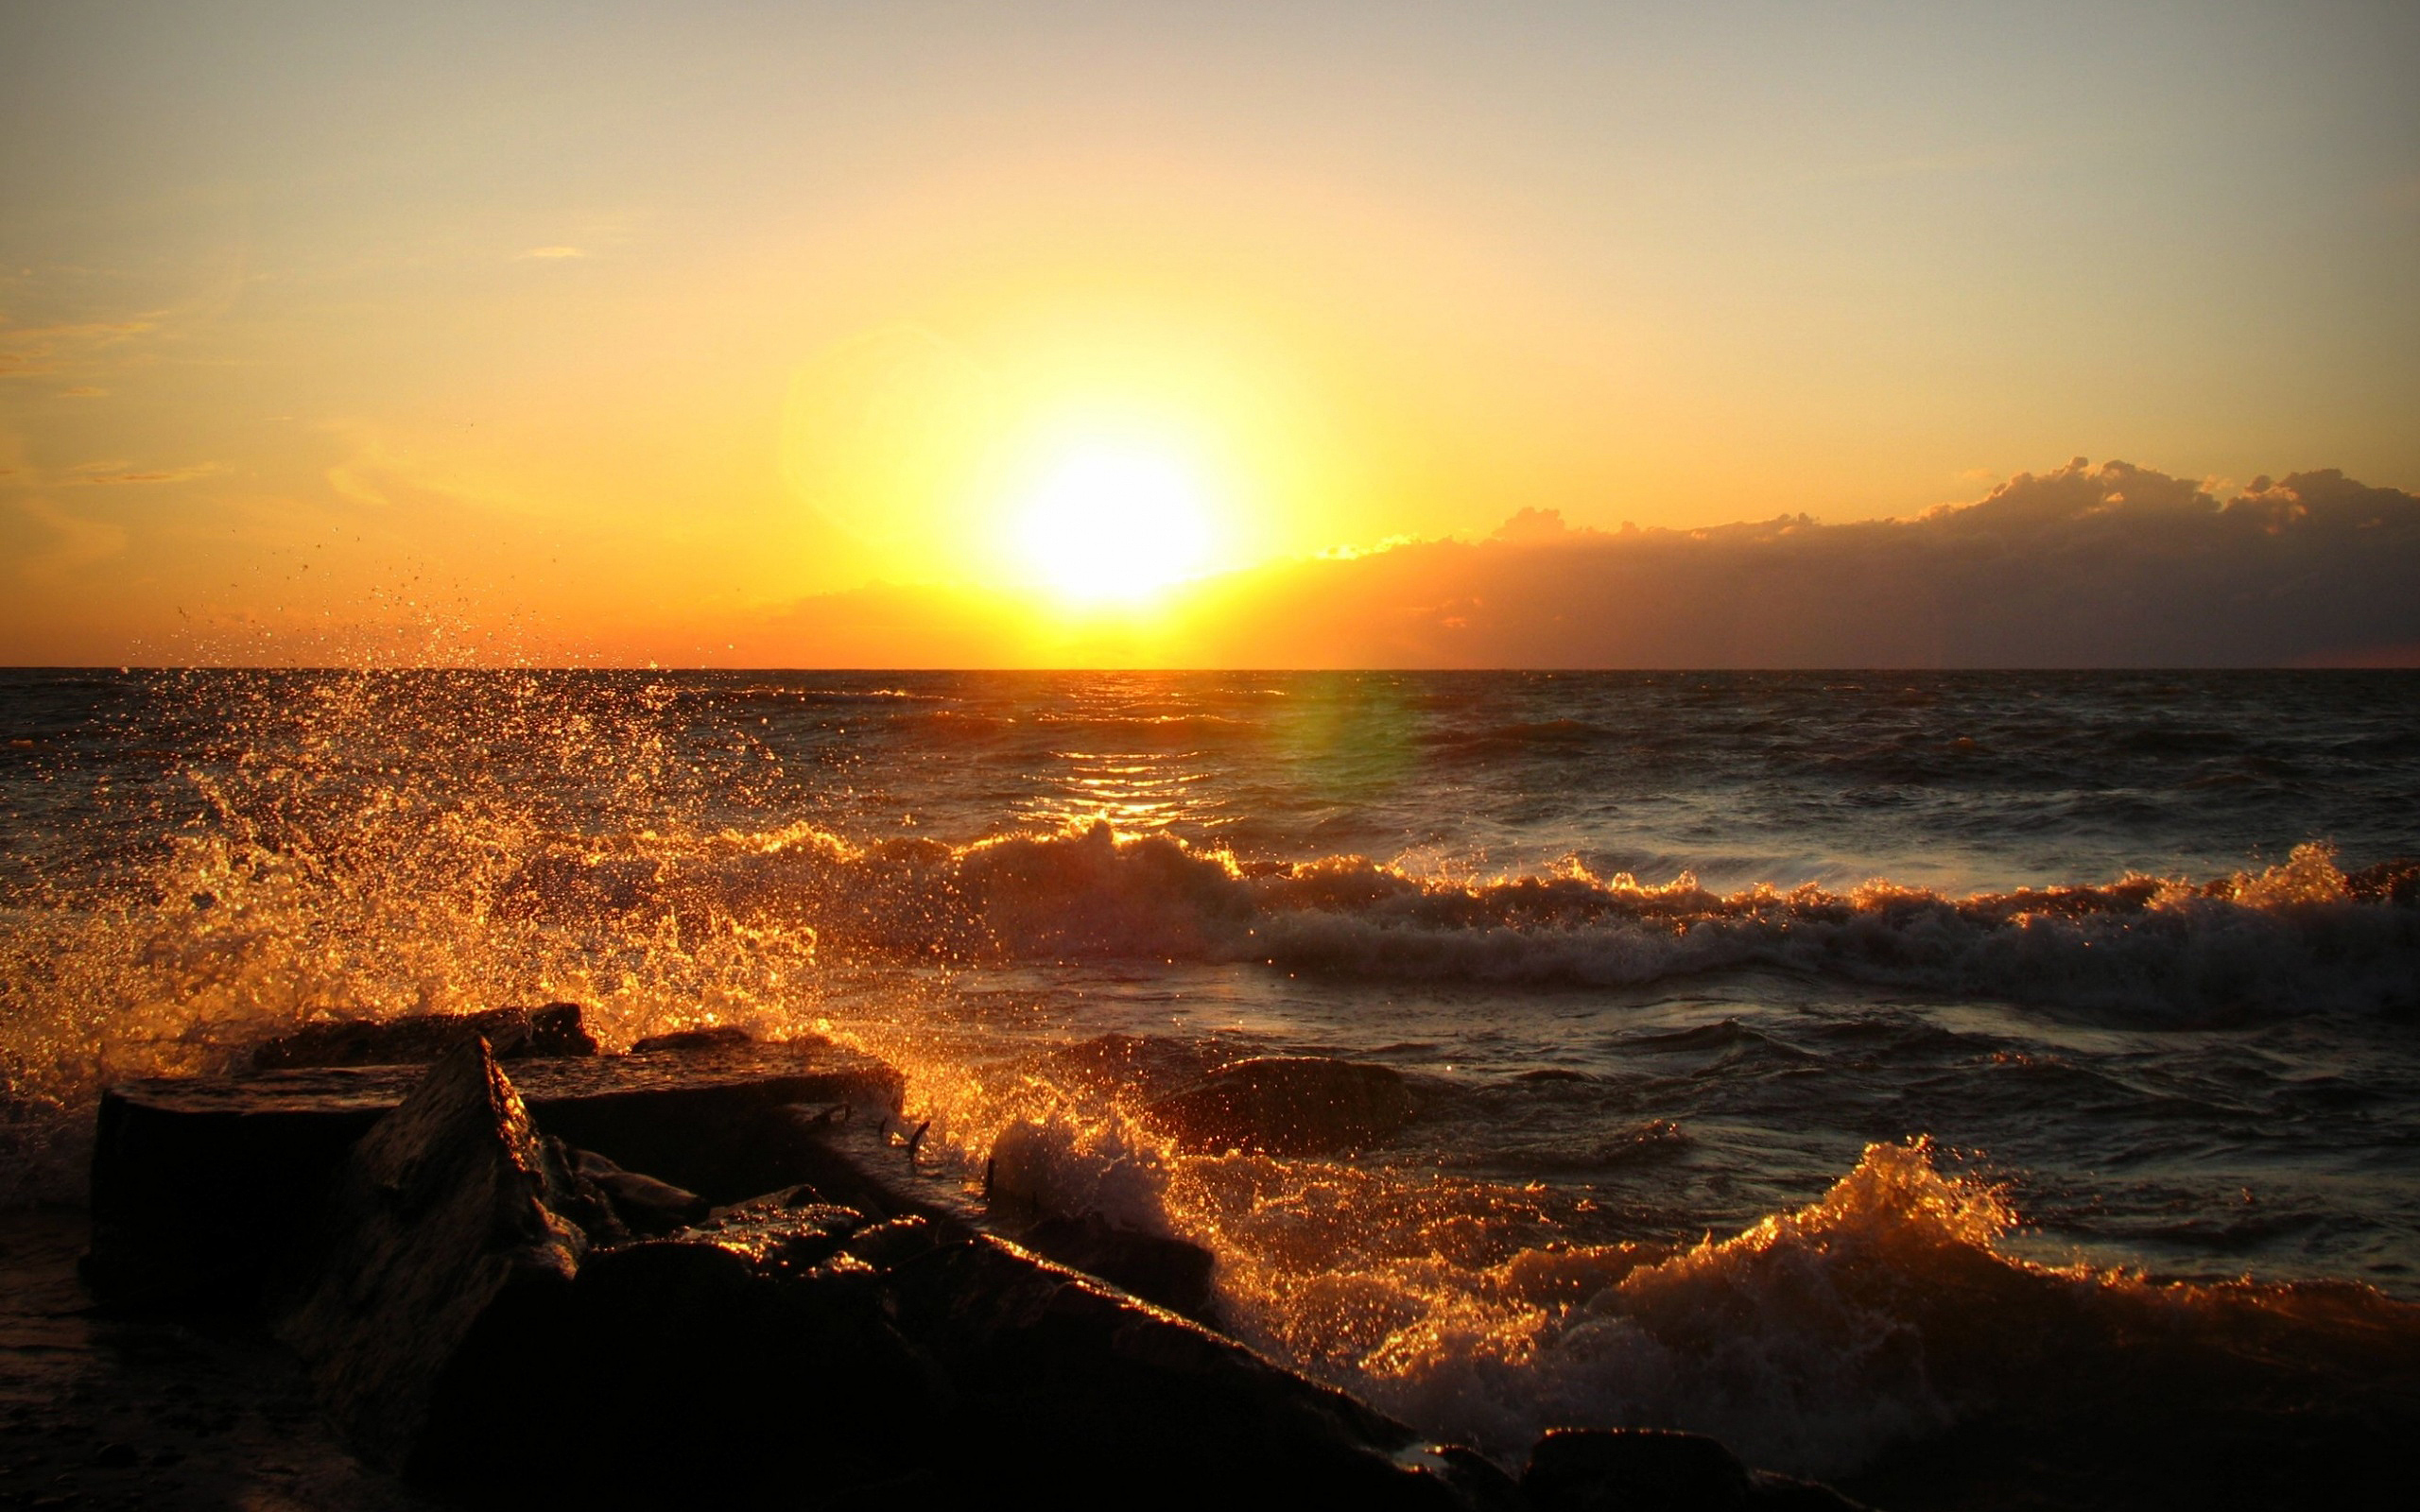 sunset images ocean